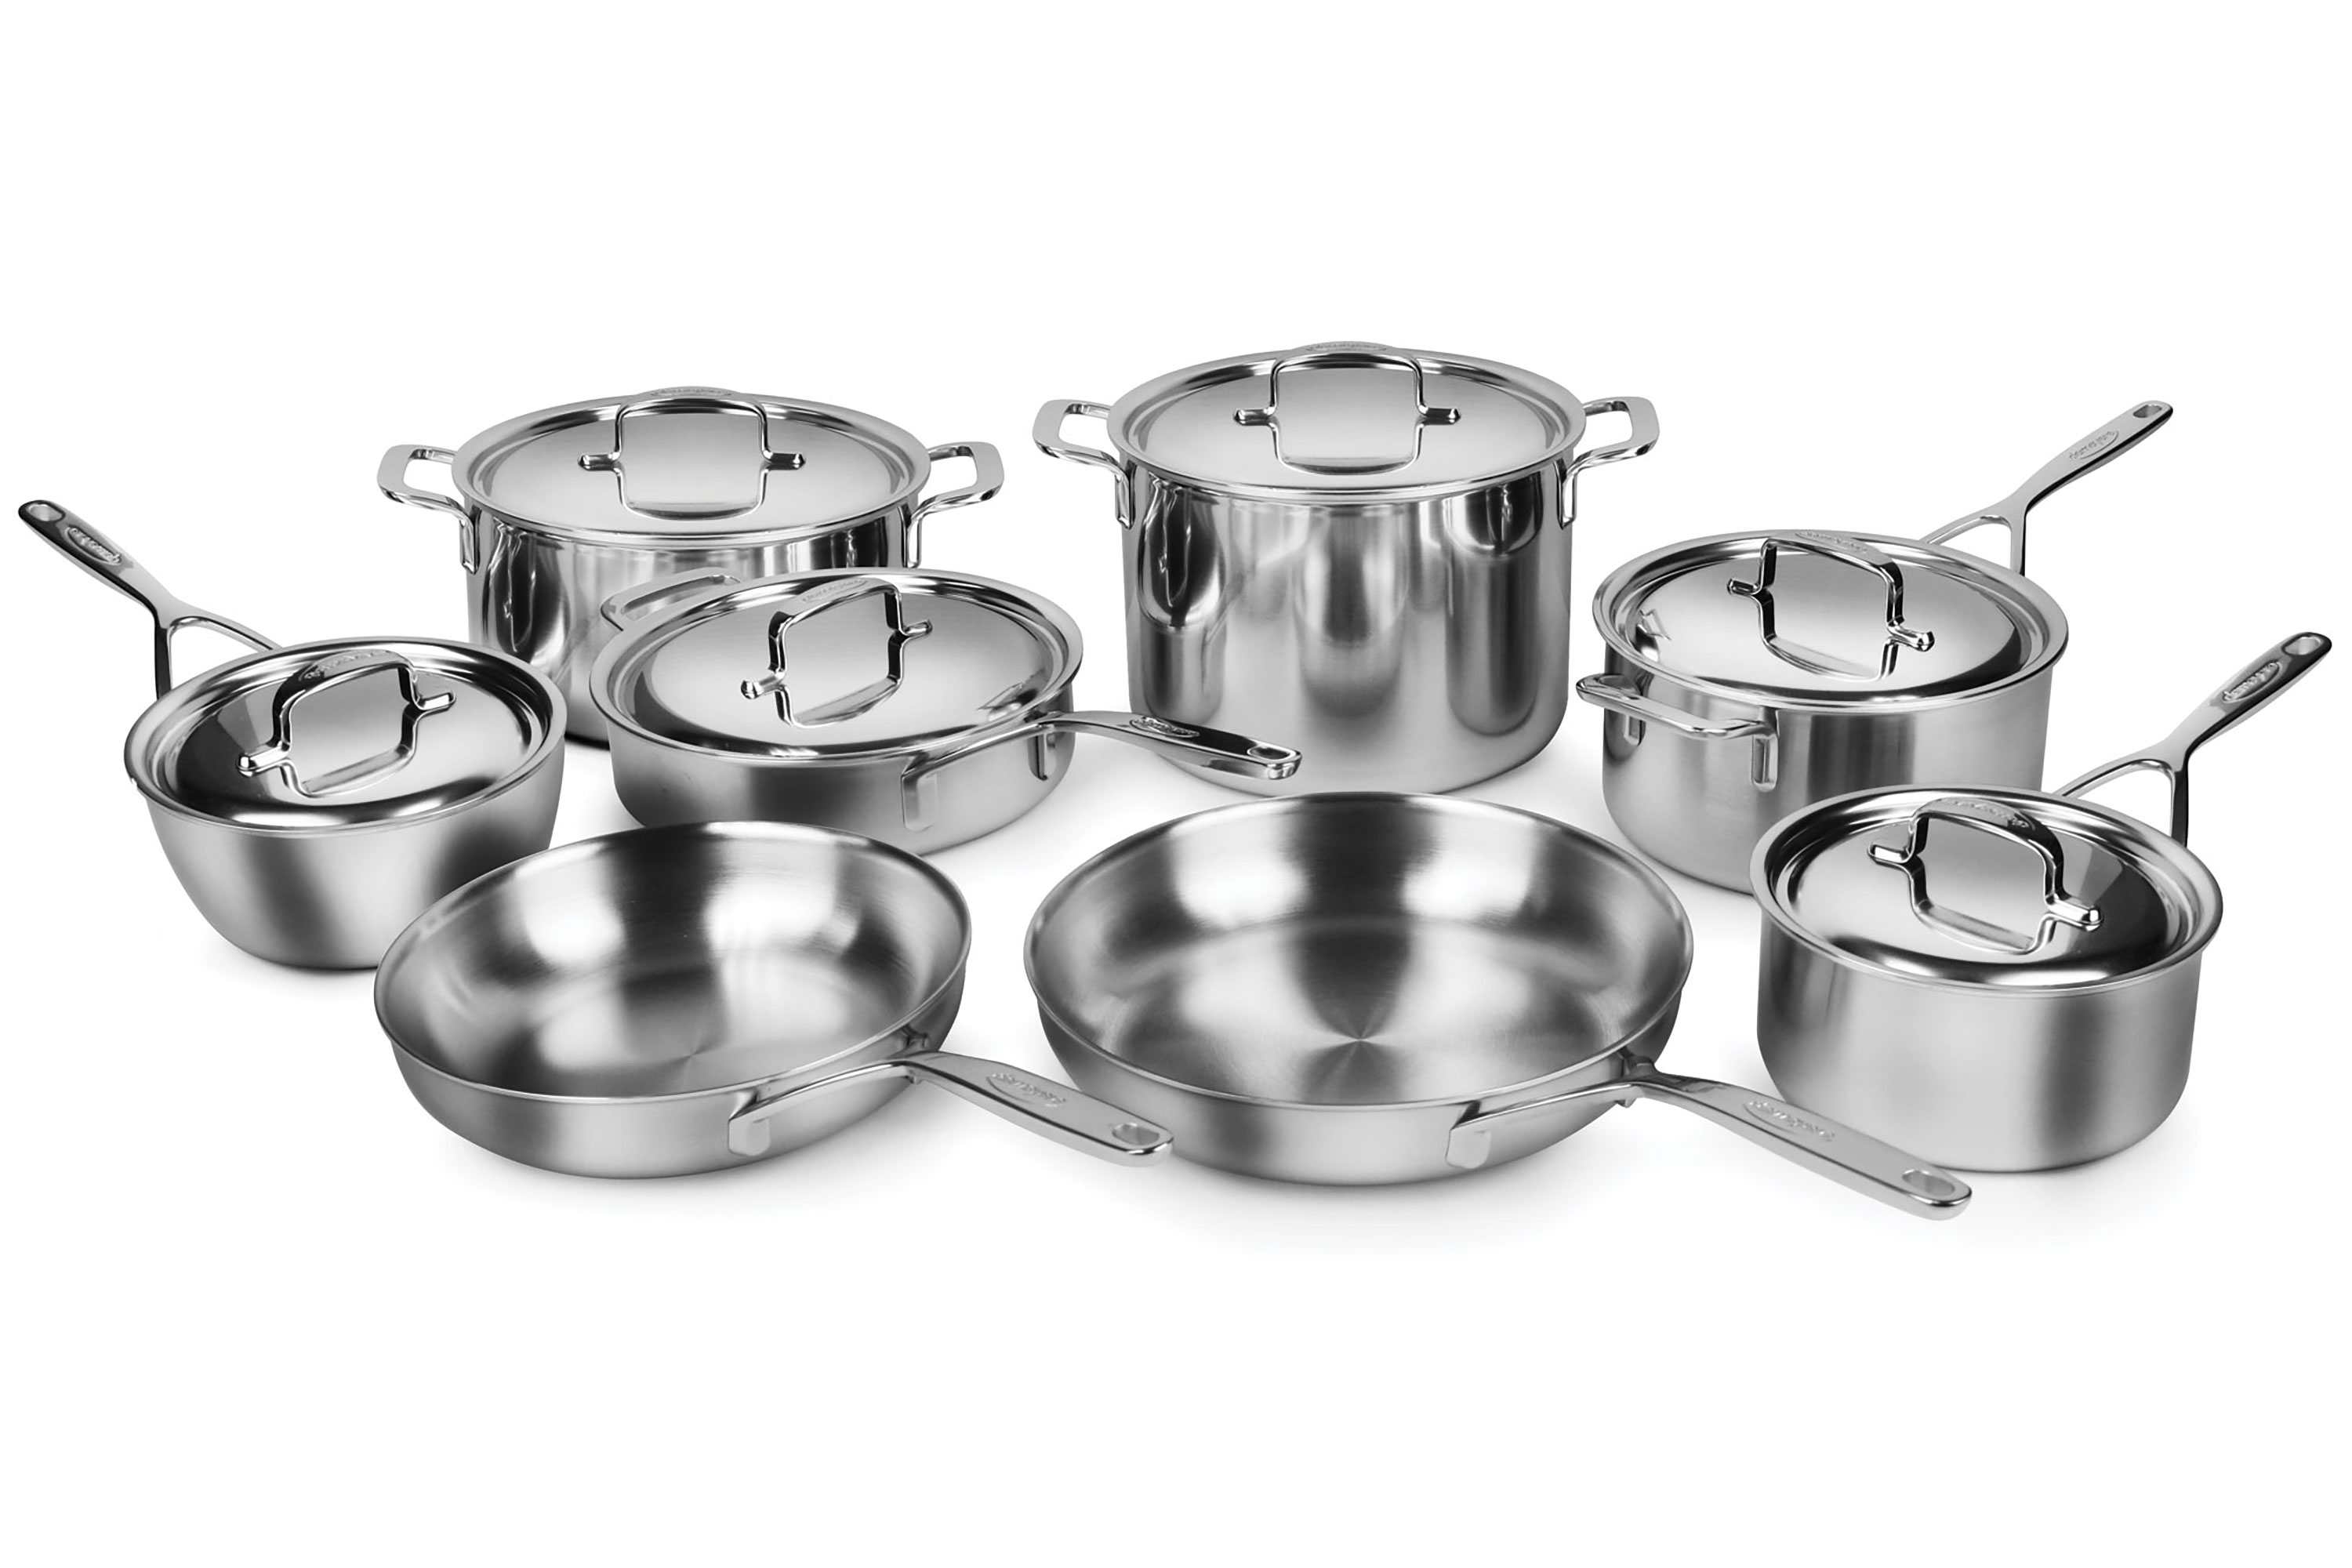 Demeyere Cookware Set 5 Ply Plus Stainless Steel 14 Piece